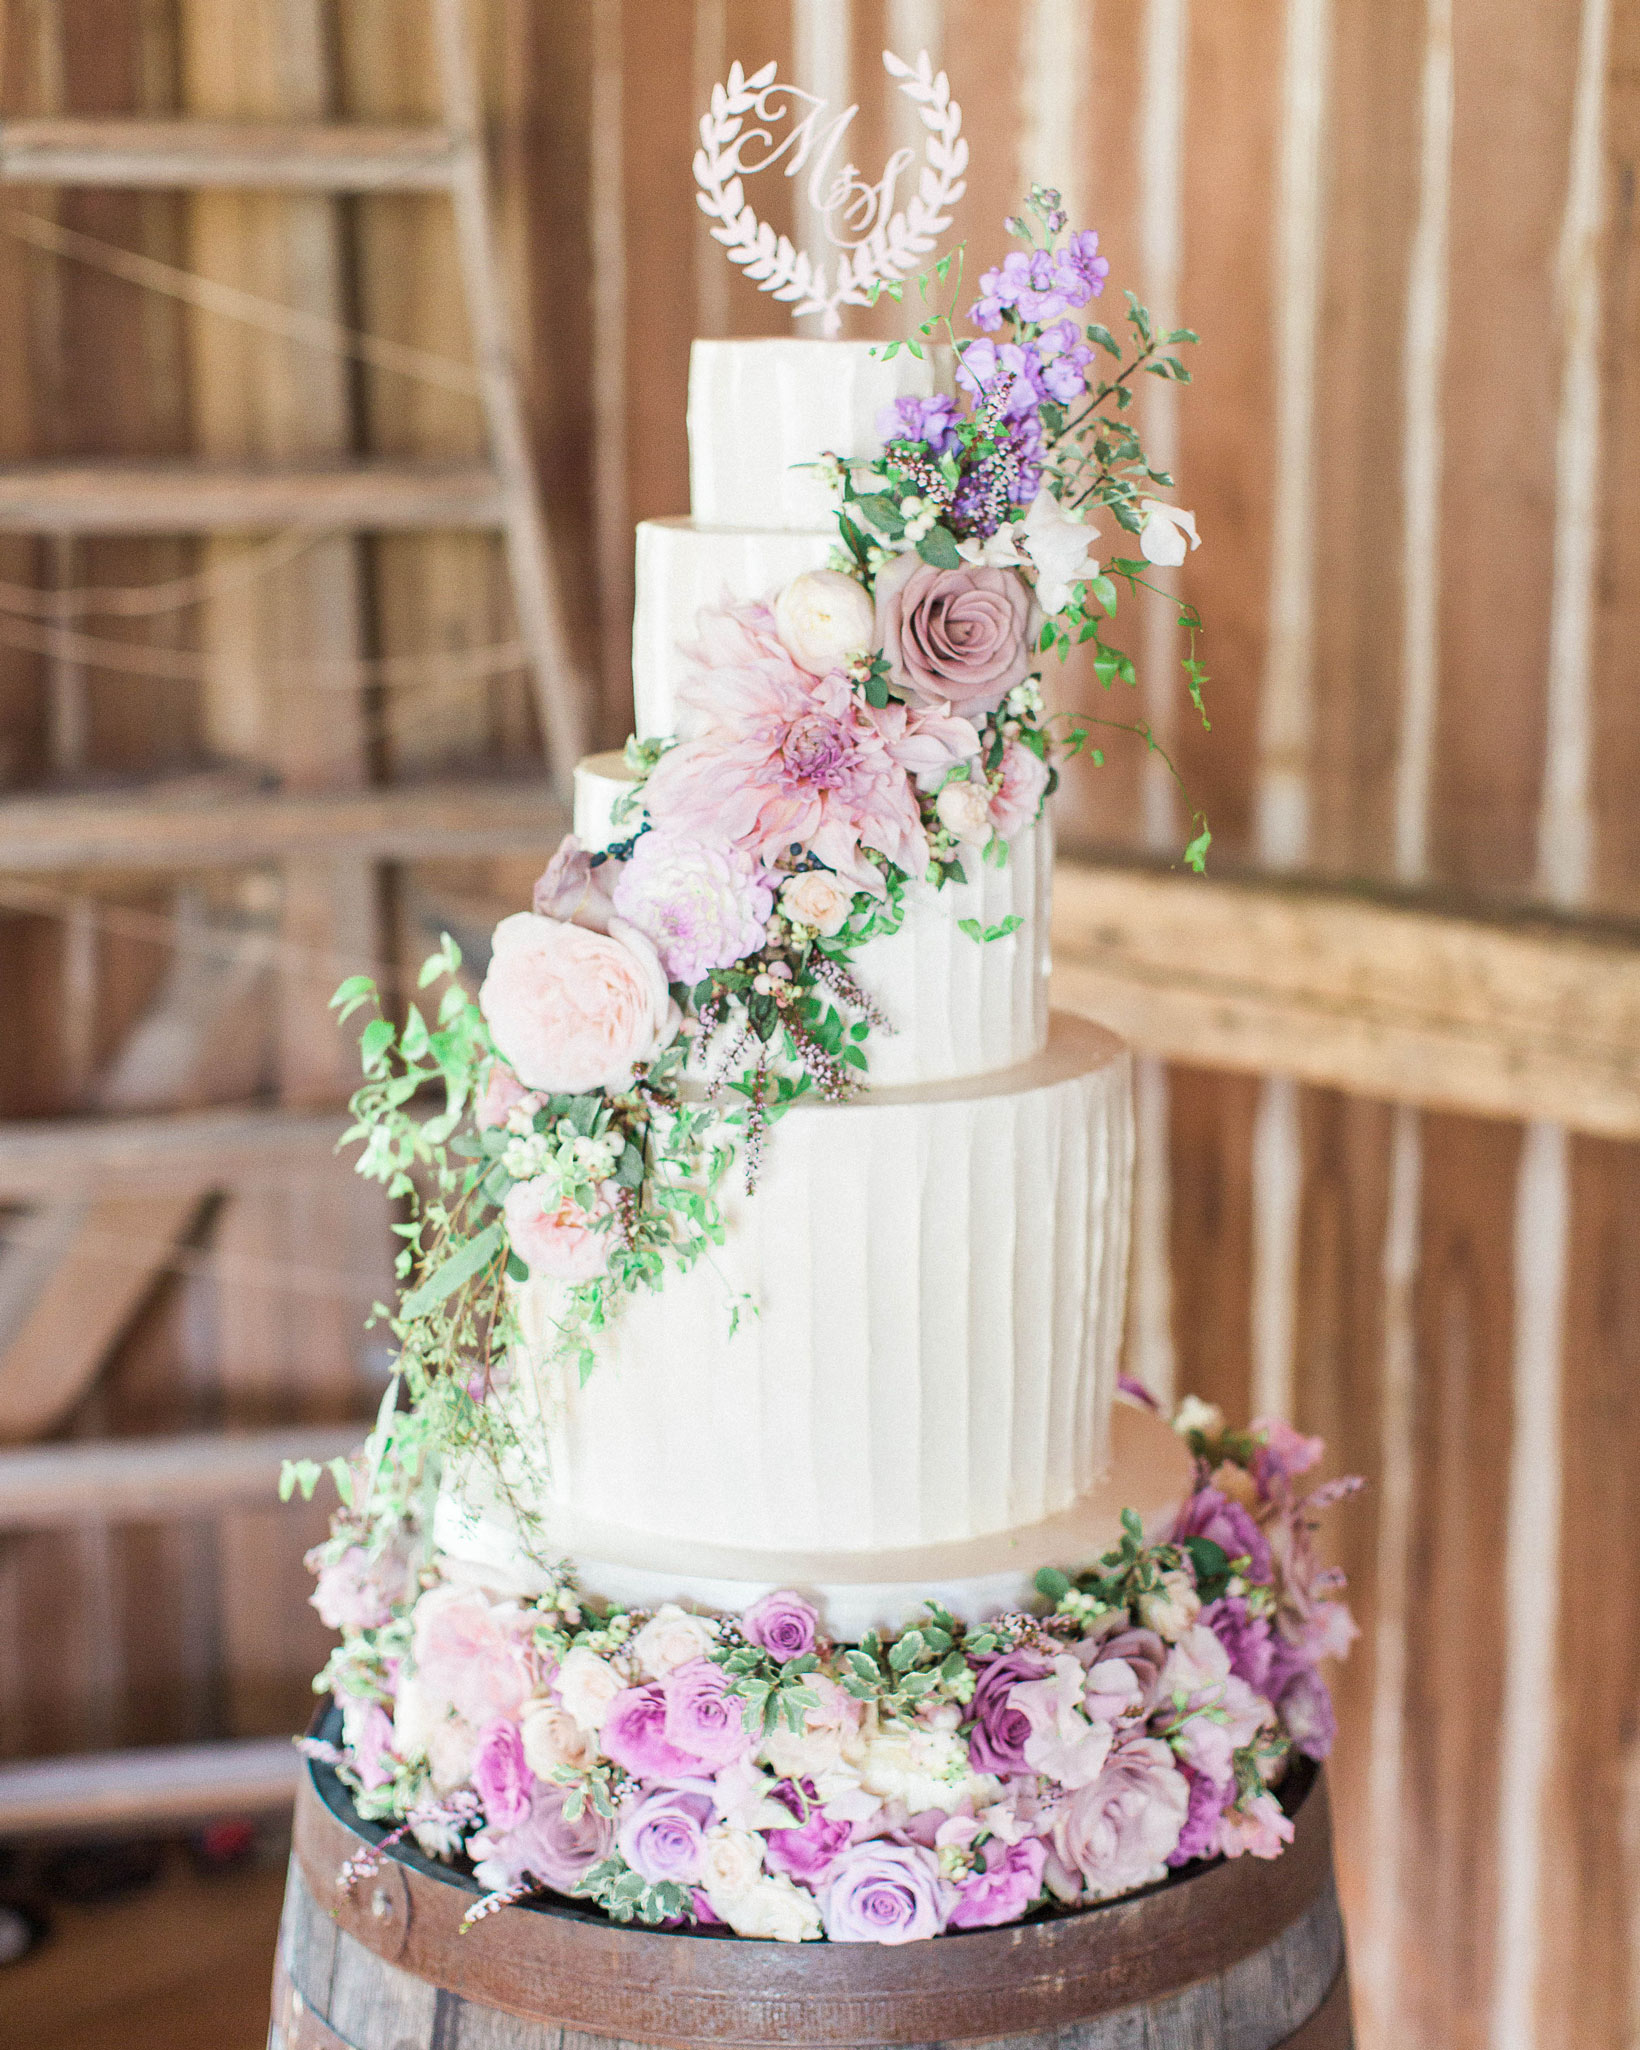 Outstanding 44 Wedding Cakes With Fresh Flowers Martha Stewart Weddings Home Interior And Landscaping Ologienasavecom